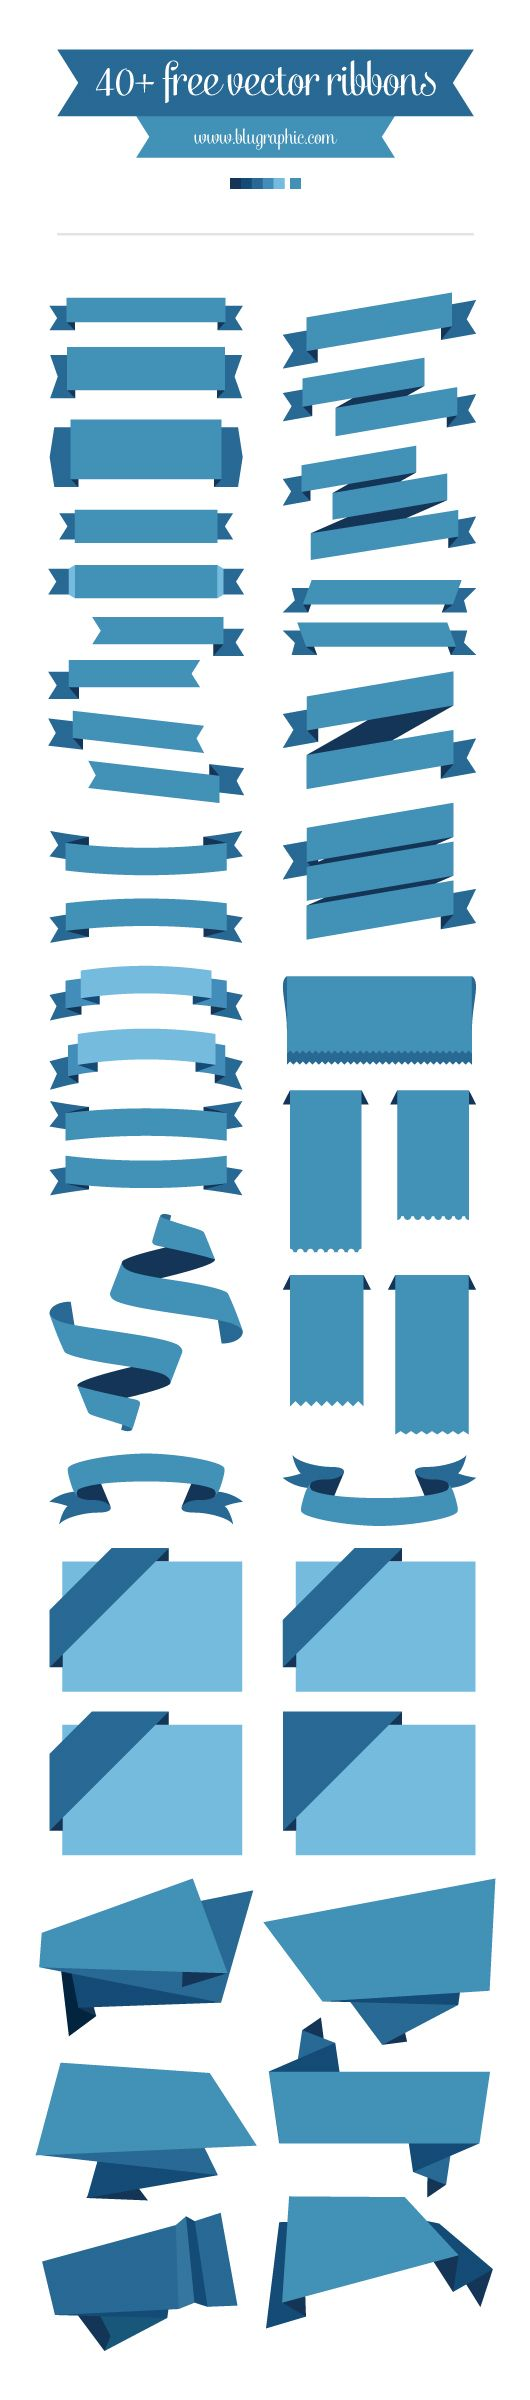 40+ Free Vector Ribbons | RPG Resources Inspiration | Pinterest ...